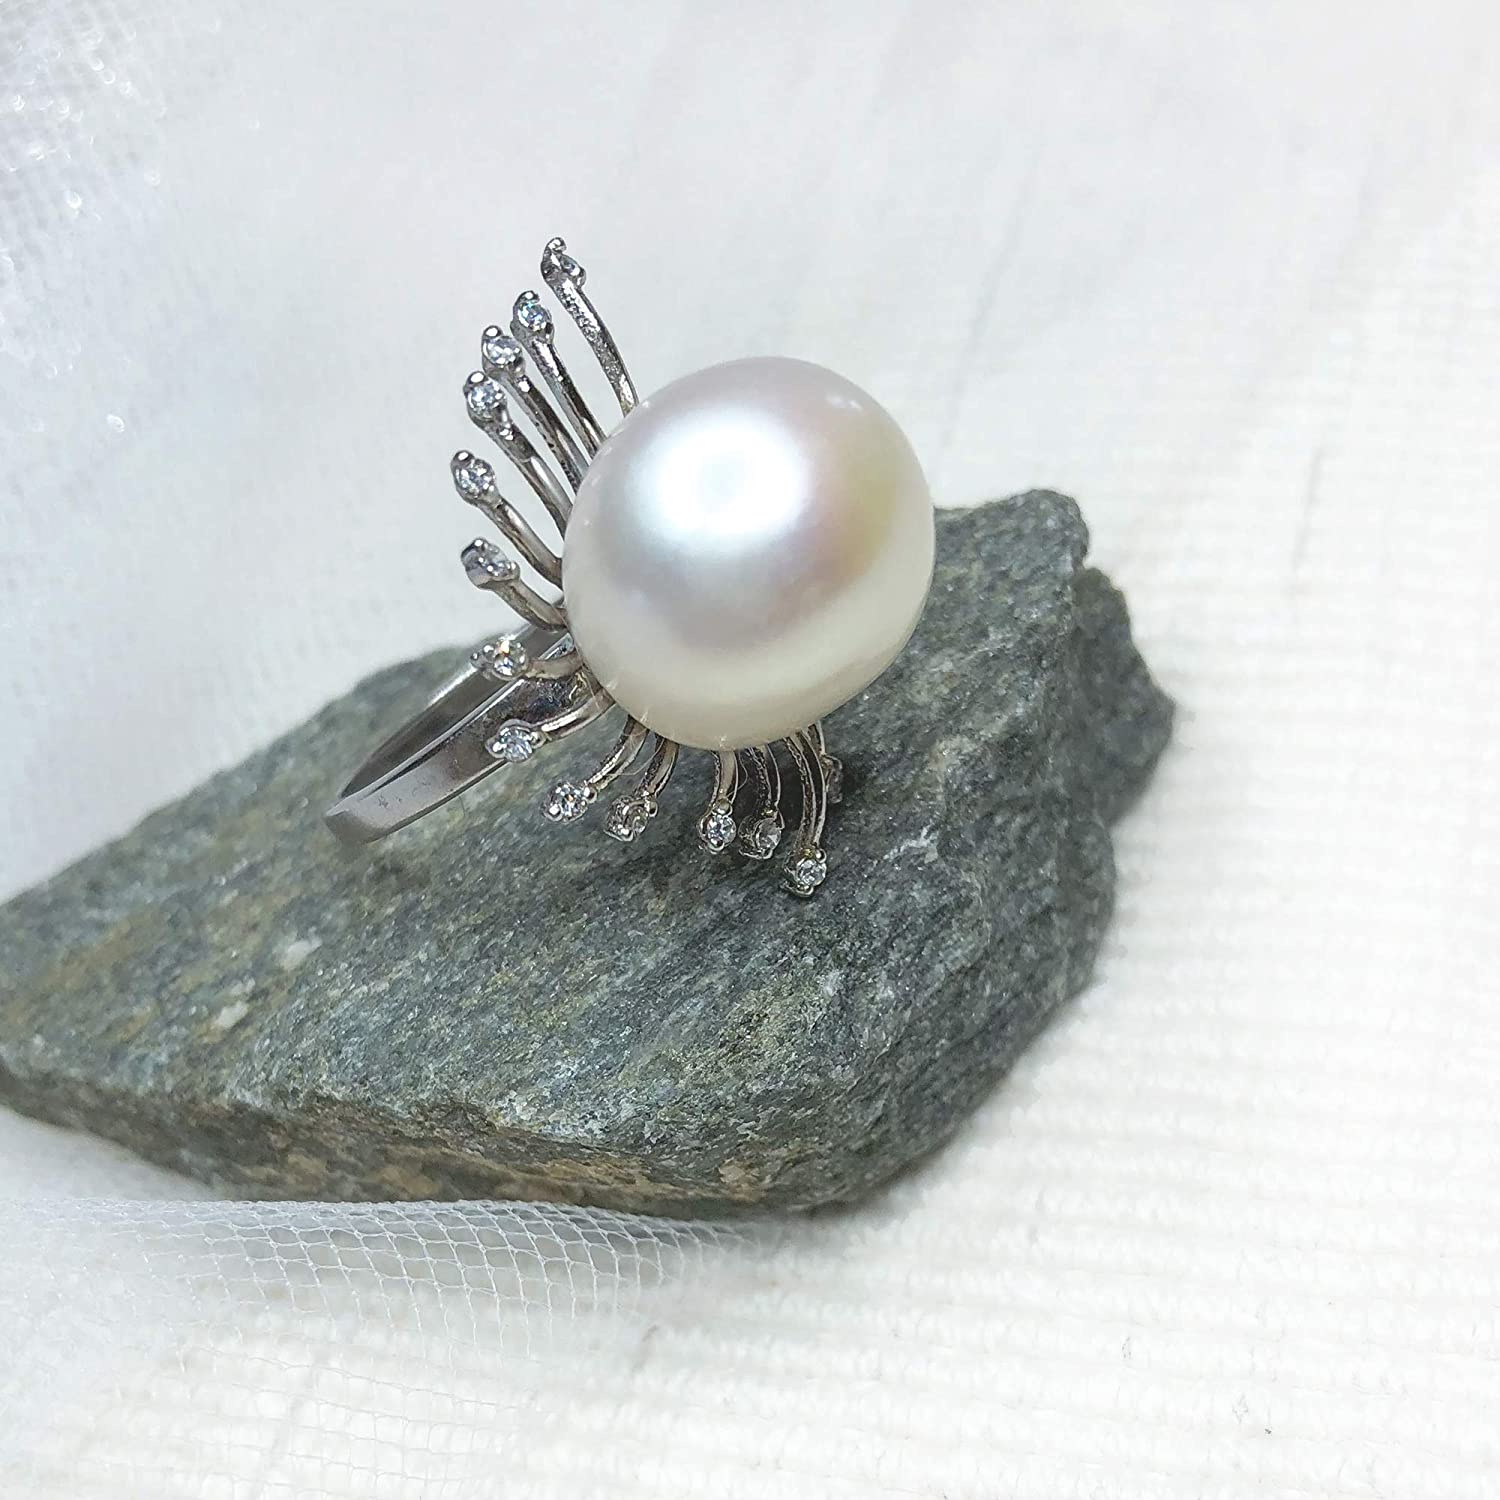 Silver Statement Ring Sterling Silver and Pearl Cocktail Ring